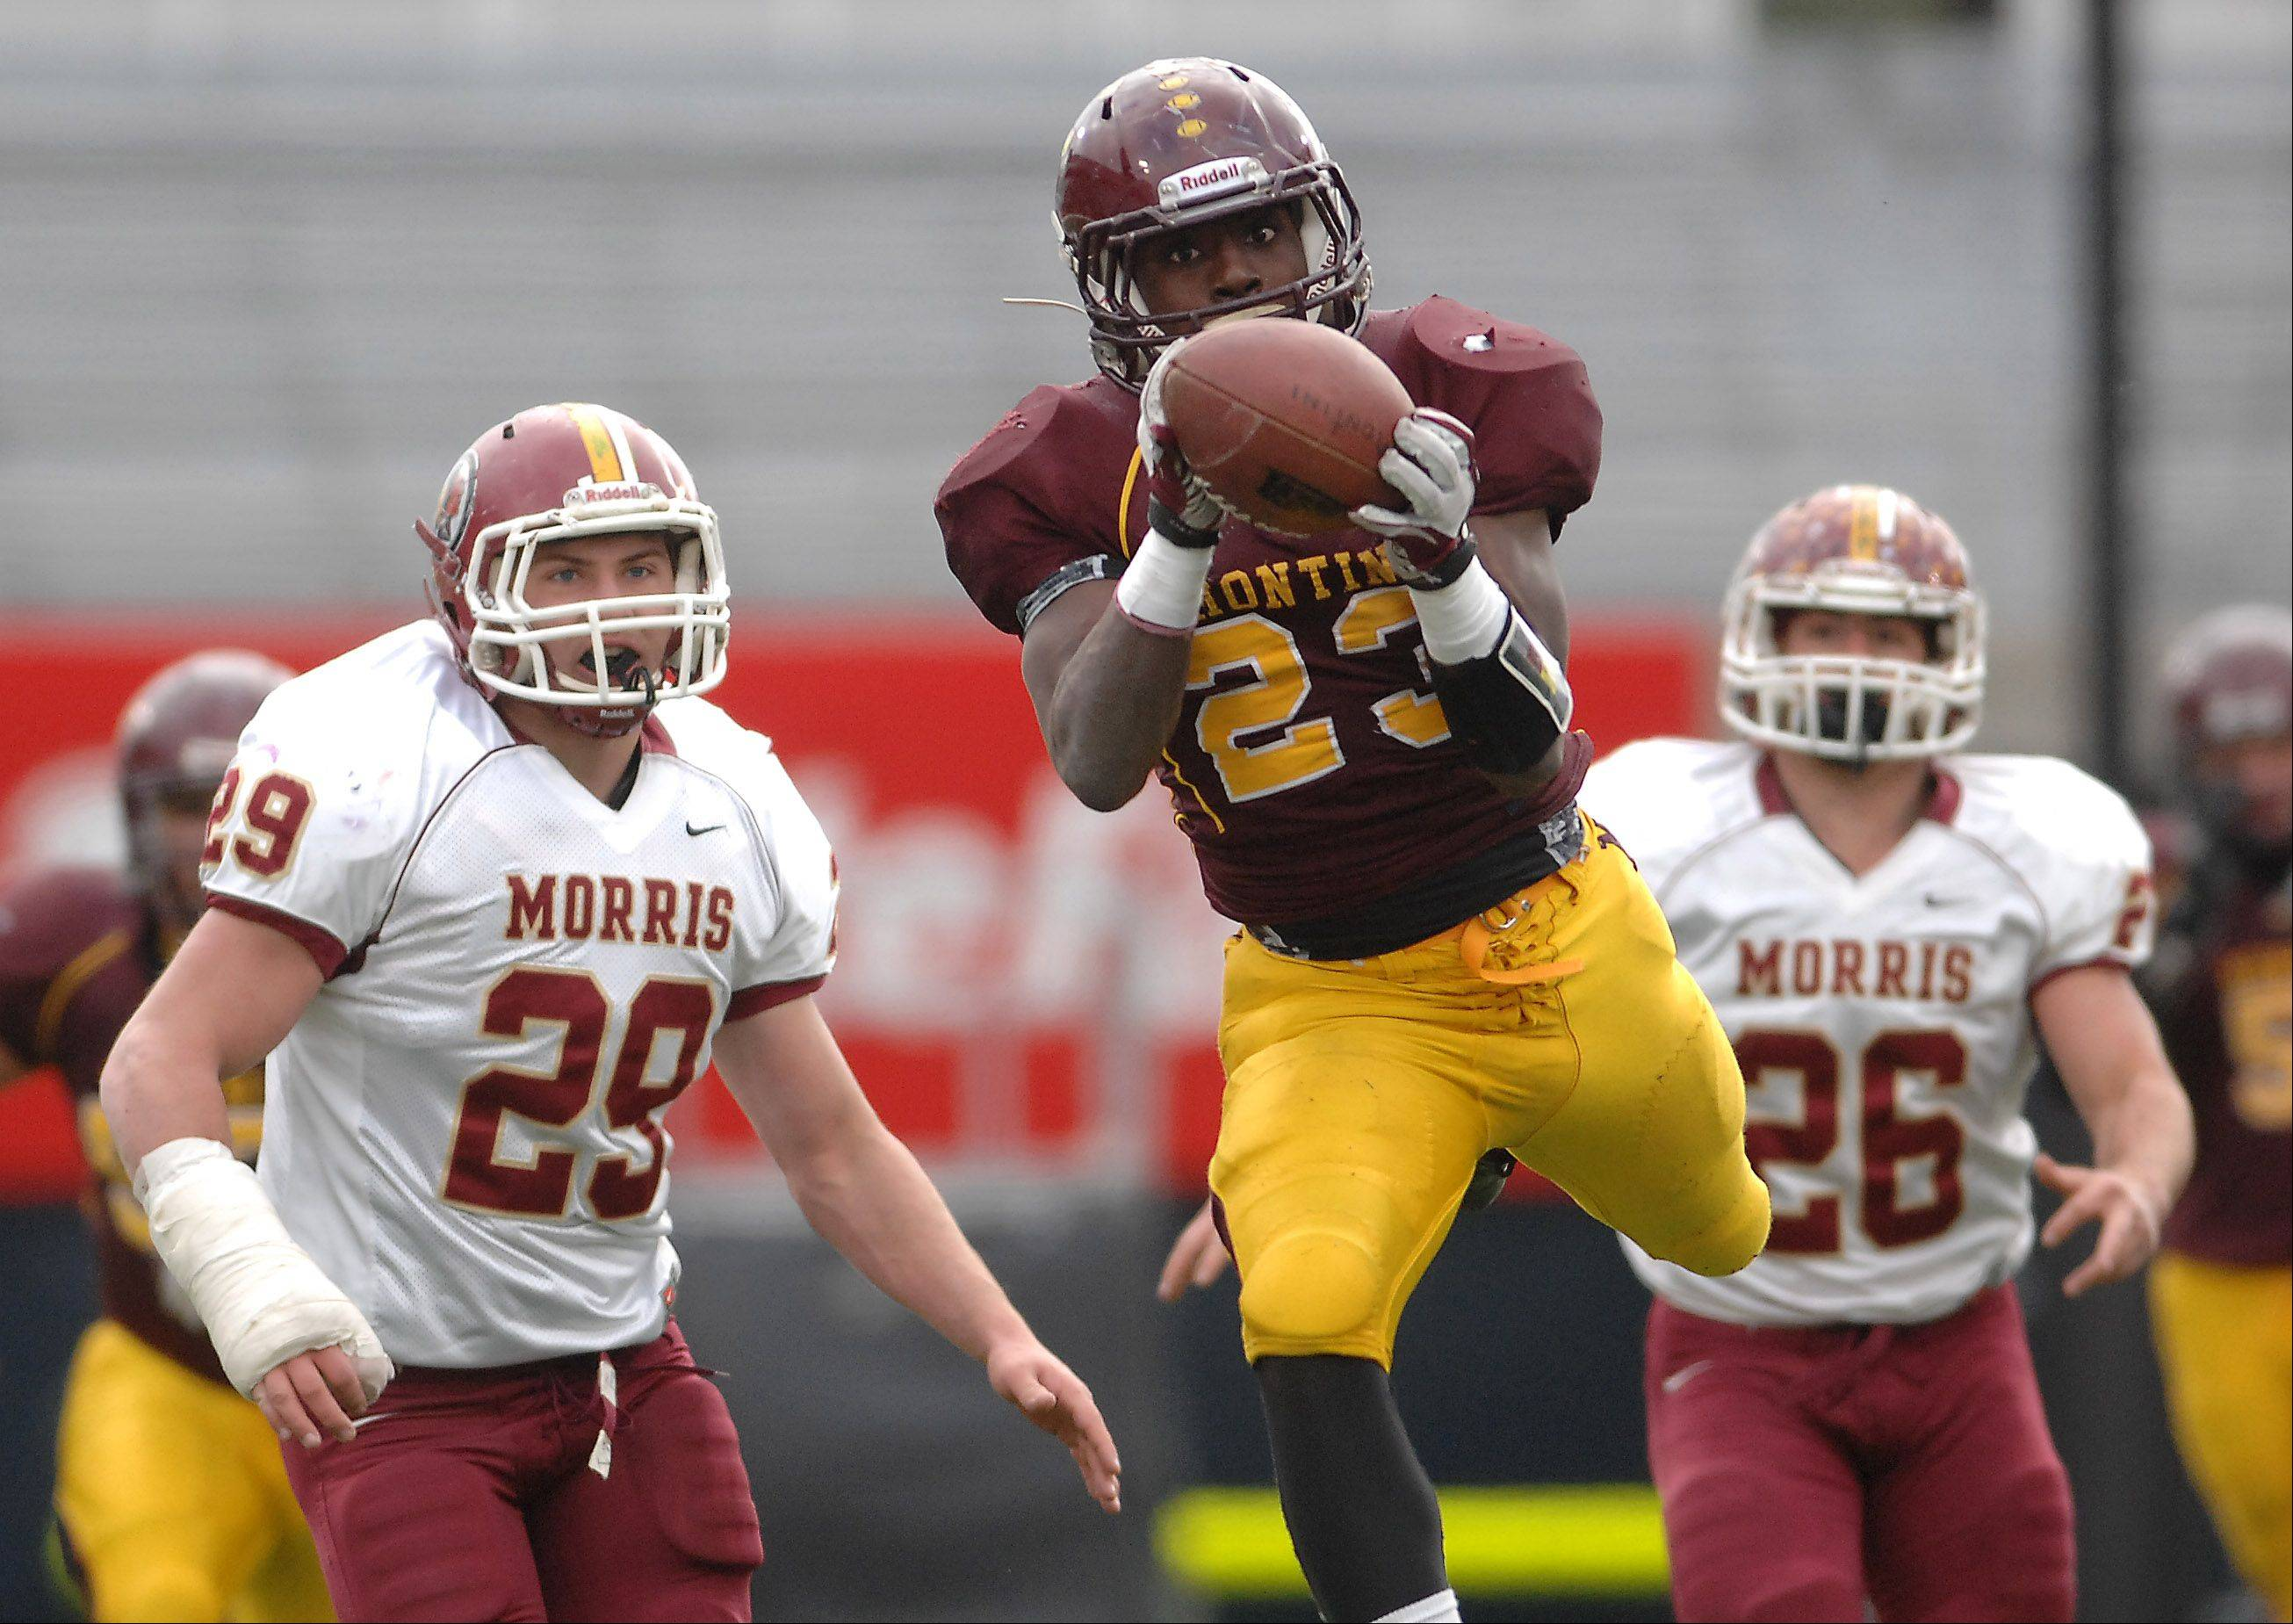 Montini's Dimitri Taylor (23) hauls in a pass that he turns into a second quarter touchdown after a run during Saturday's Class 5A state title game against Morris at Memorial Stadium in Champaign.